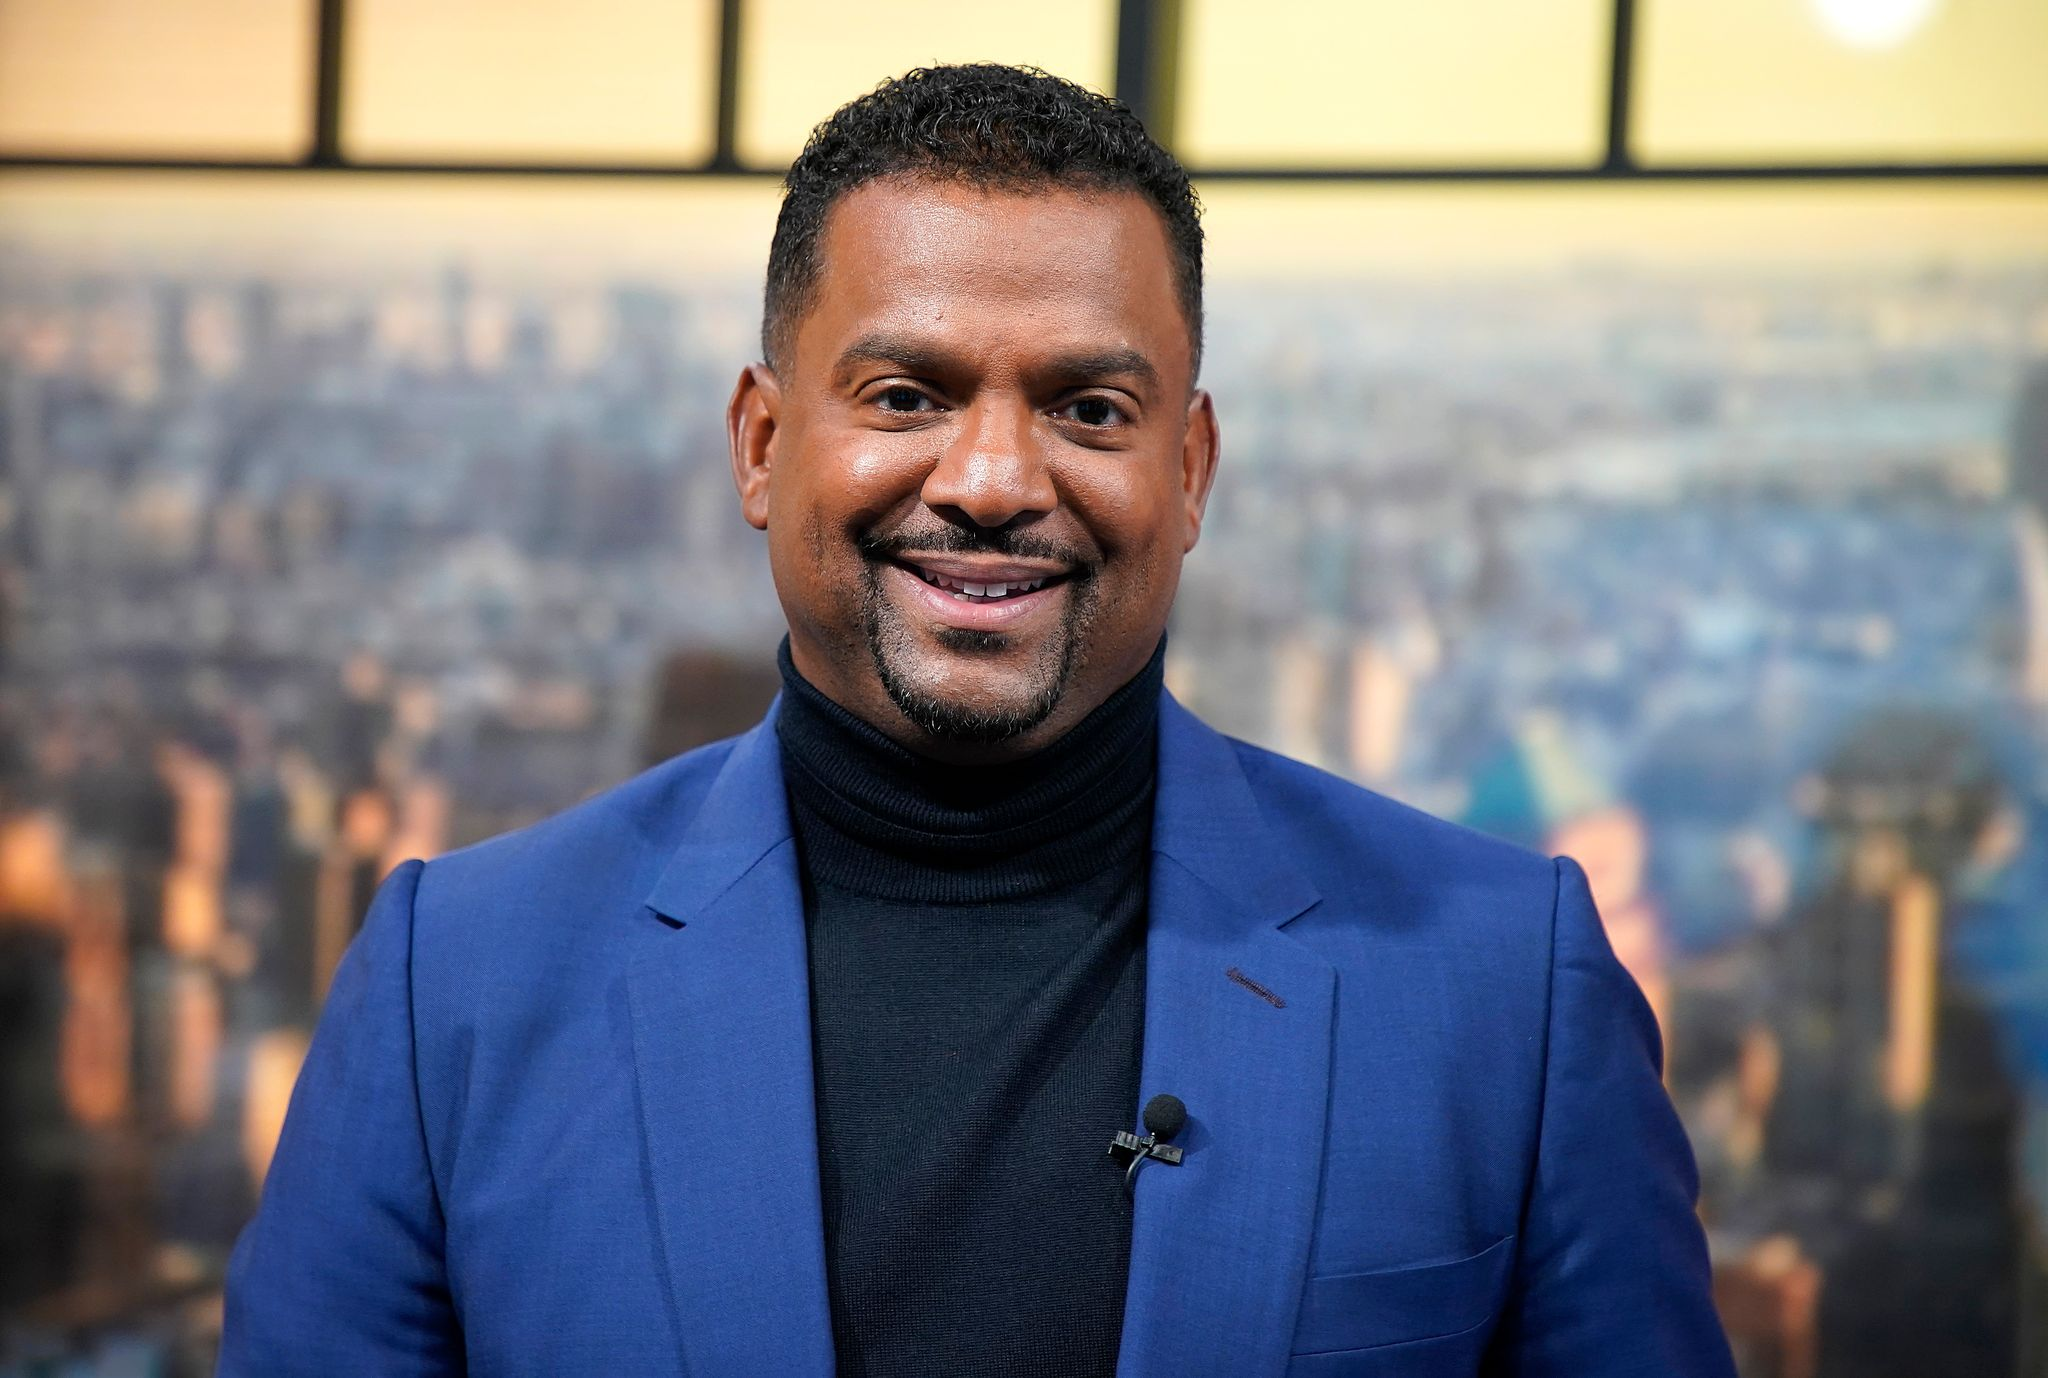 Actor Alfonso Ribeiro at People Now Studios on November 14, 2019 in New York City. | Photo: Getty Images